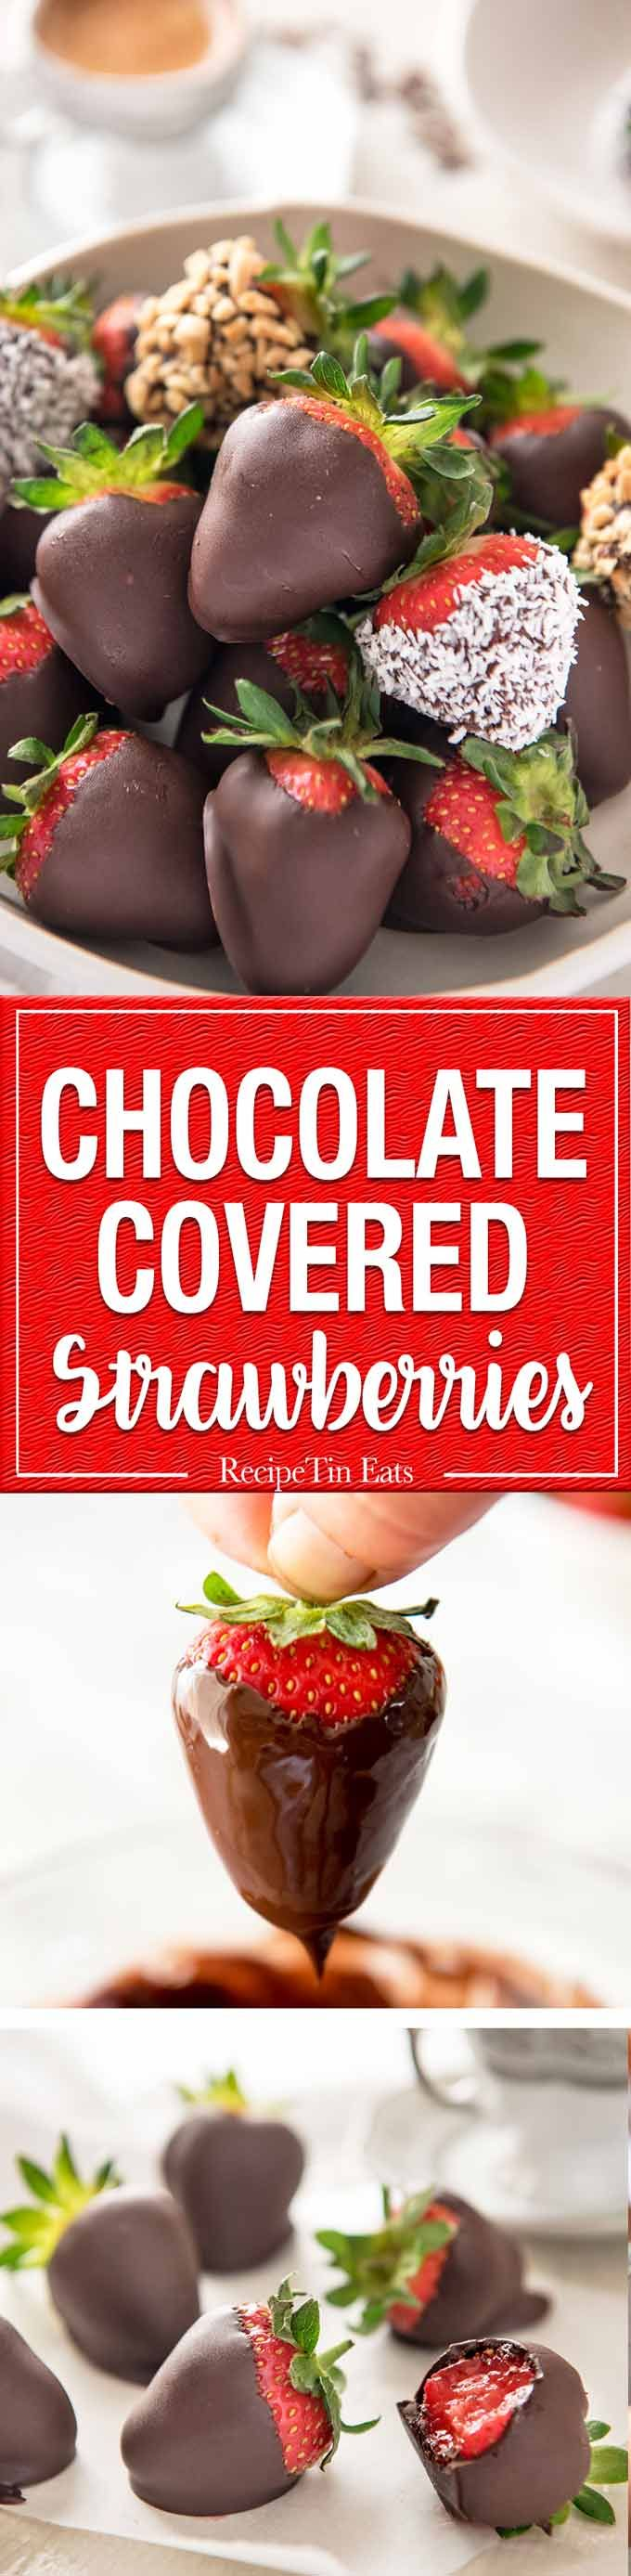 Chocolate Covered Strawberries - 1 cup of chocolate chips, 2 tsp oil (for shine + stop chocolate from cracking) and strawberries is all you need! Fast, fabulous and just 47 calories per piece. www.recipetineats.com